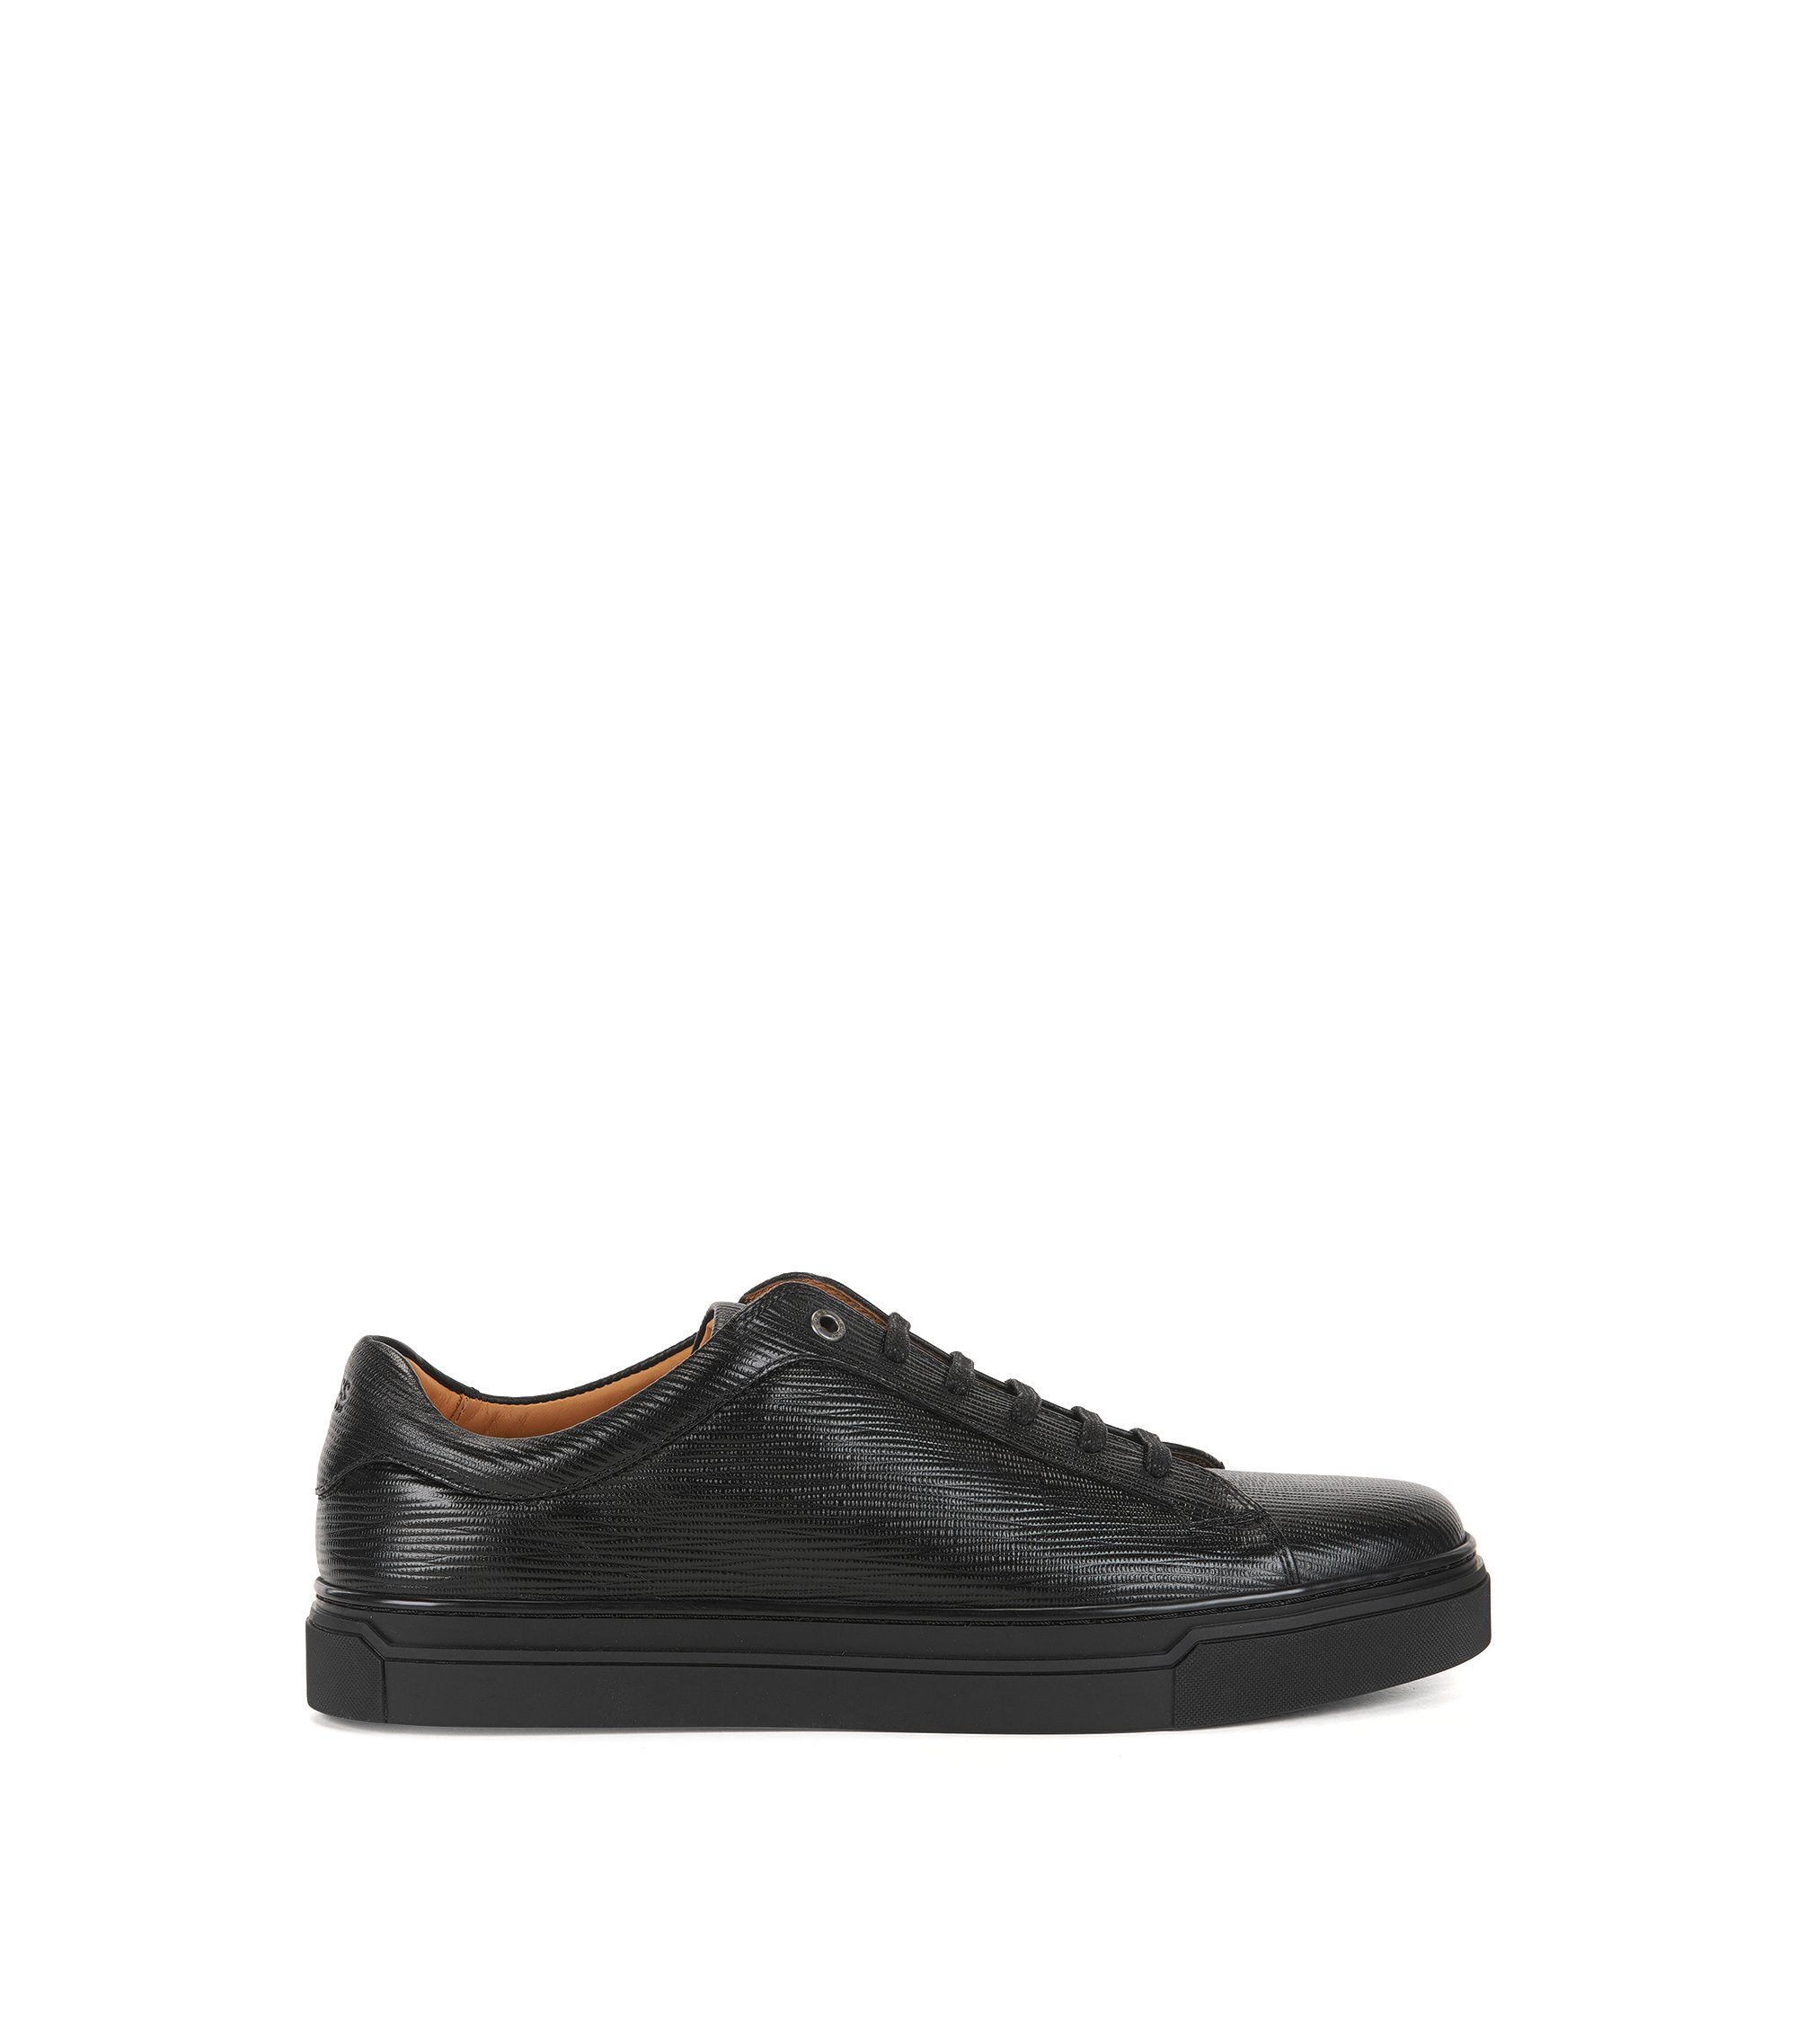 Sneakers in stile tennis in pelle stampata, Nero